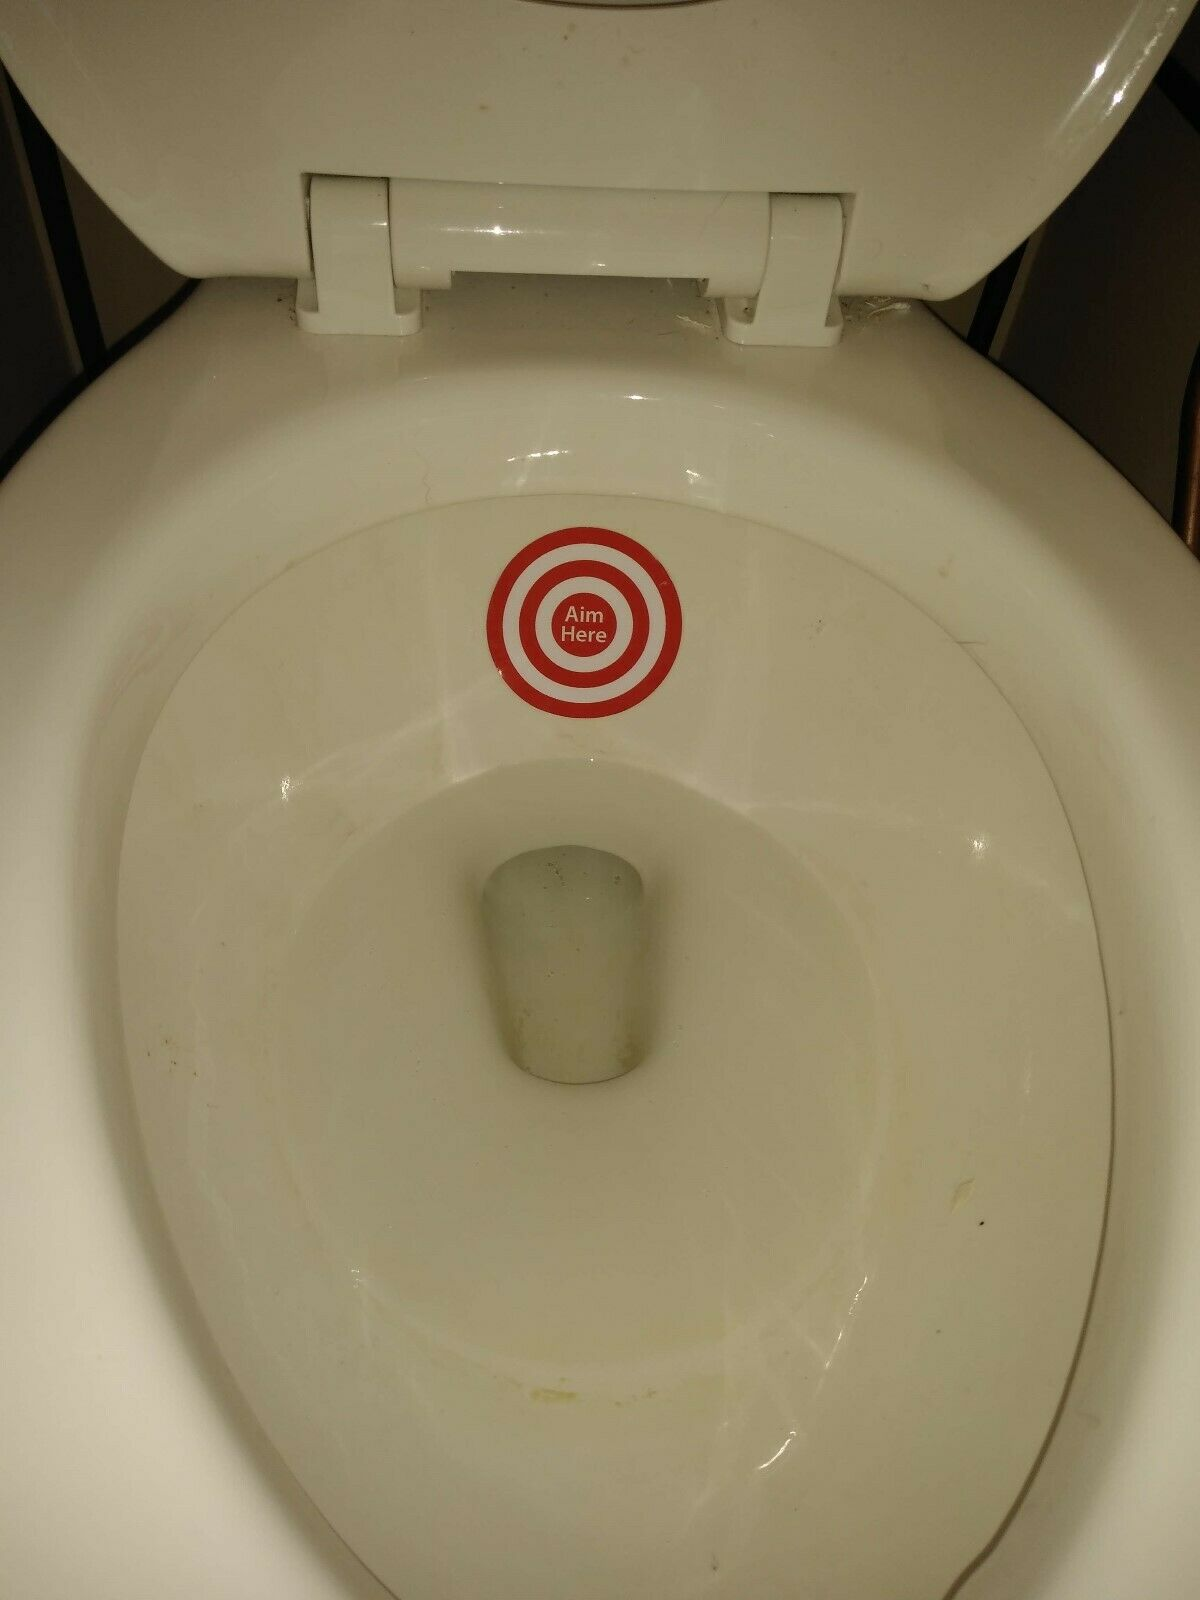 Toilet Targets for Boys Potty Training Flushable Animal Target 2 X 2 Inch Paper Tinkle Targets for Boys 100/% Biodegradable and Sewage Safe Pee Targets for Boys Training